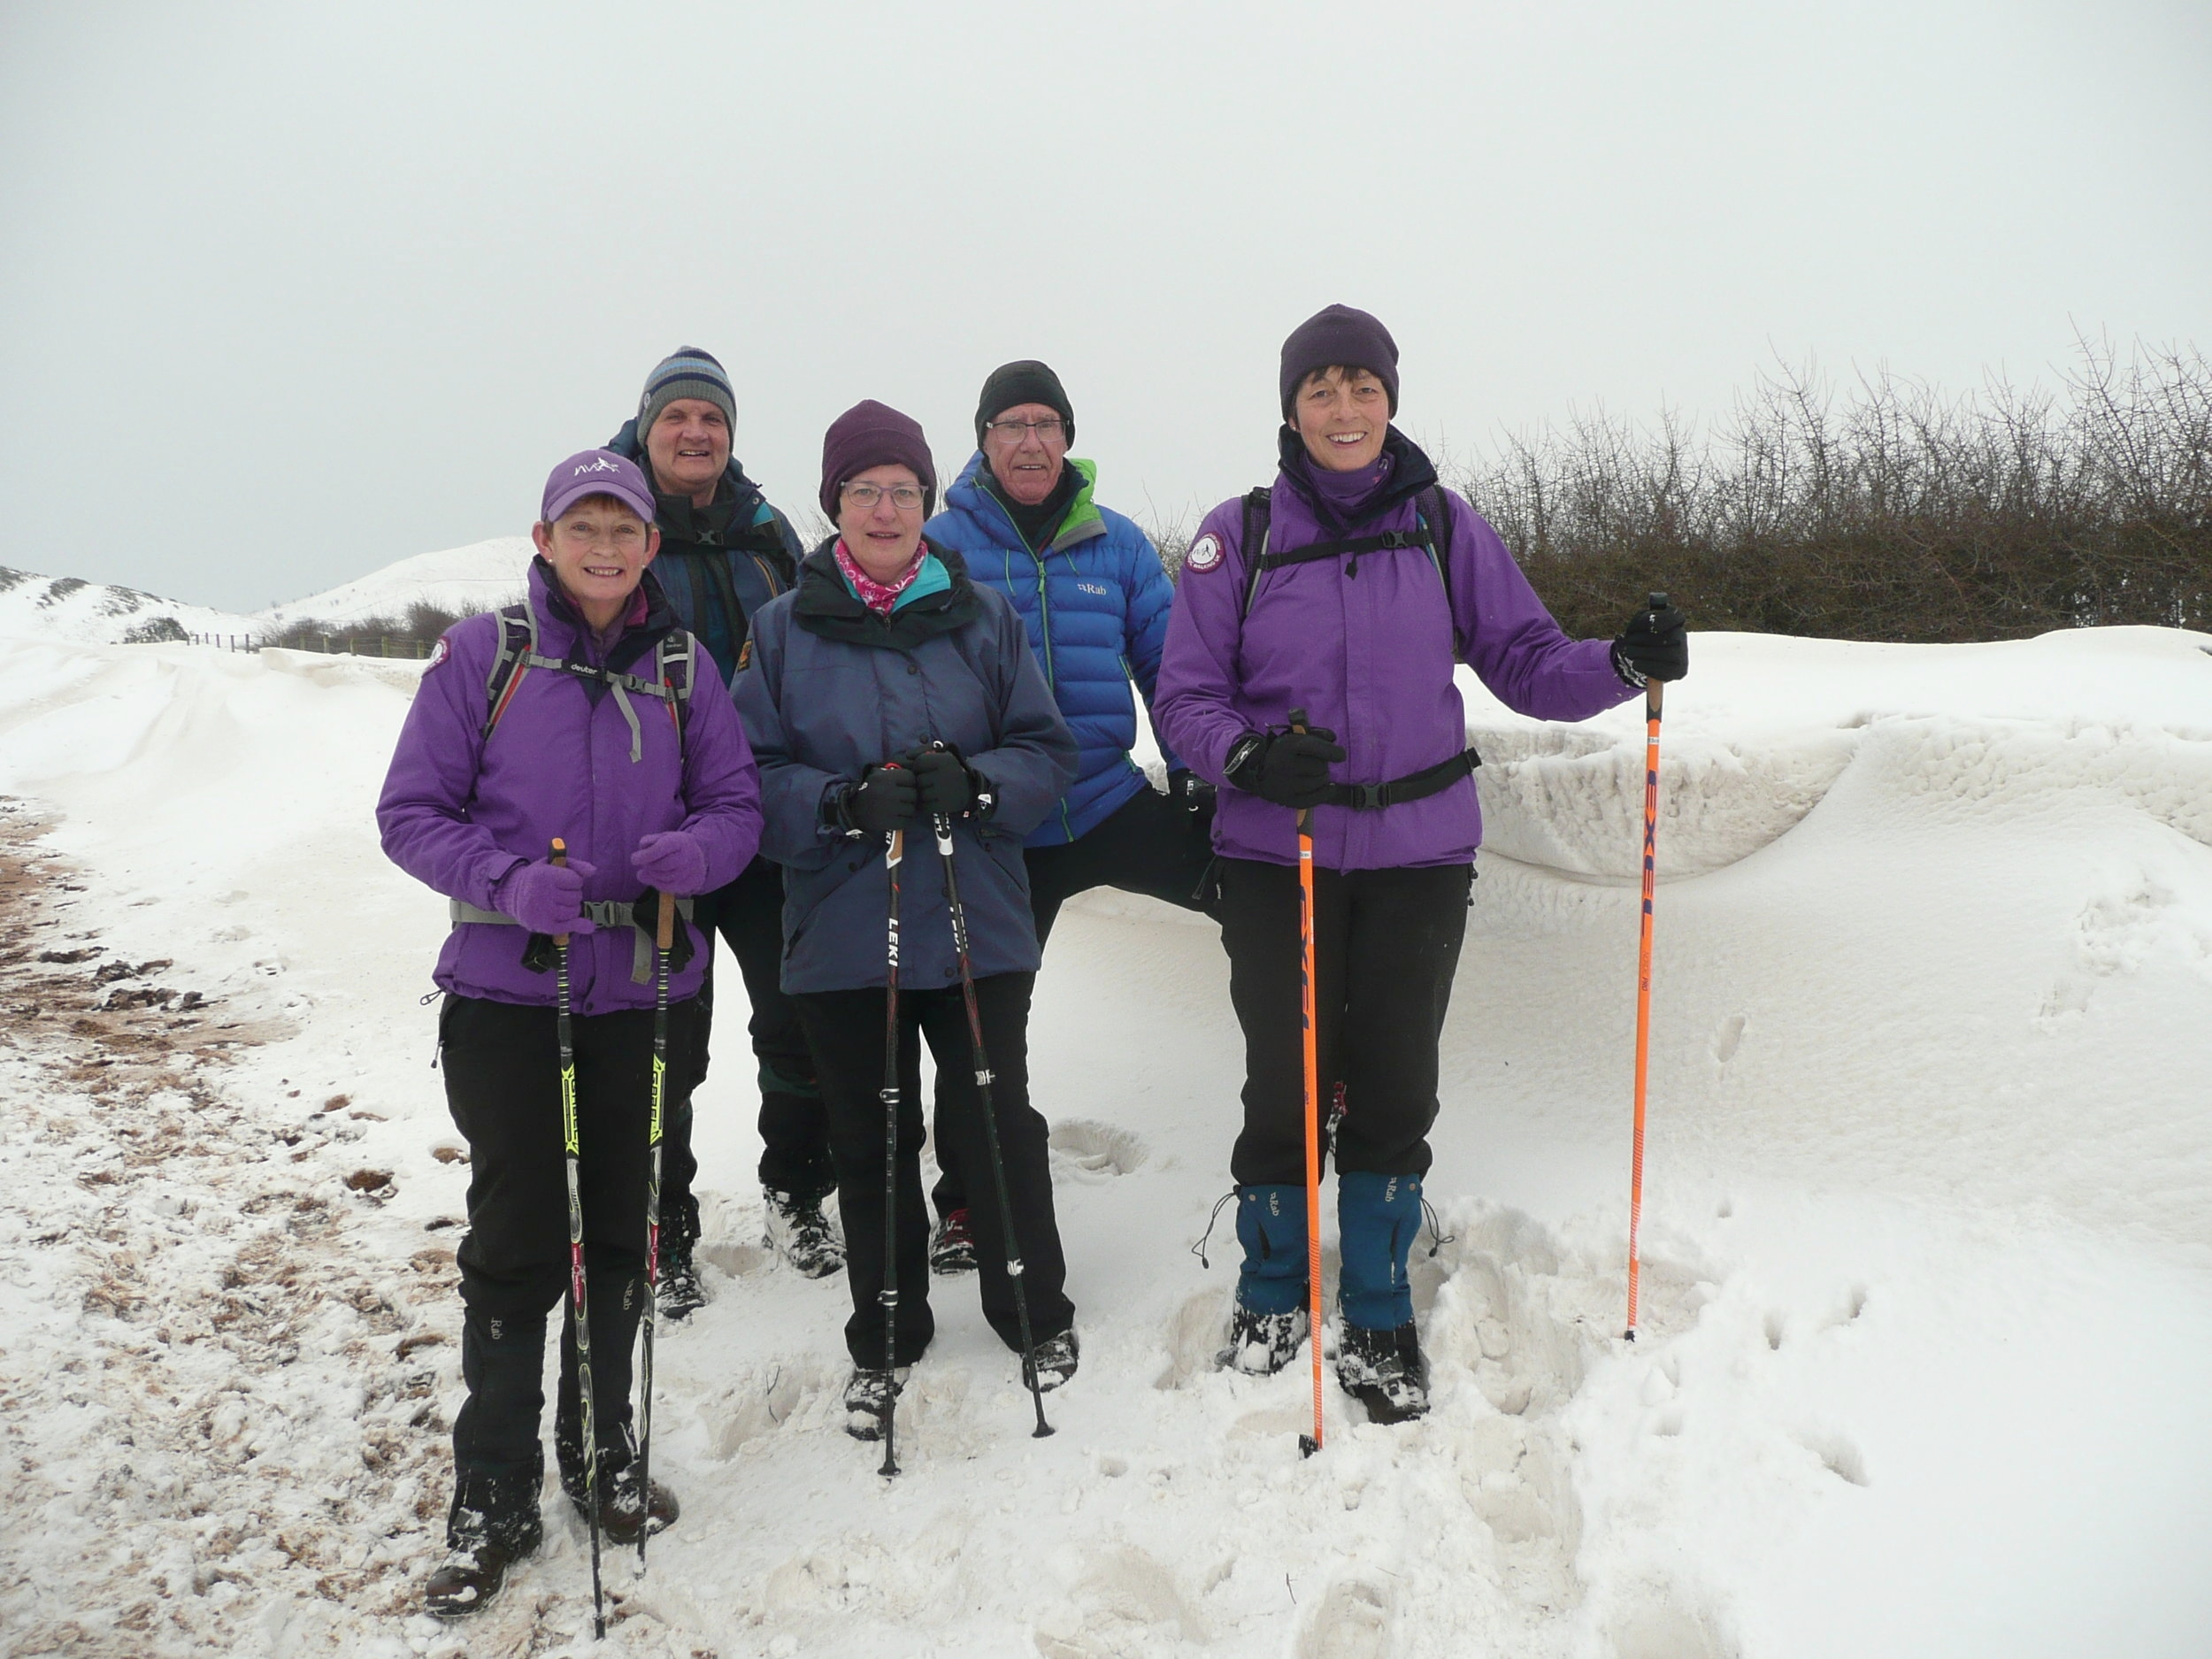 Two female Nordic Walking instructors wearing purple jackets, holding nordic walking poles leading two males and one female in deep snow on North York Moors